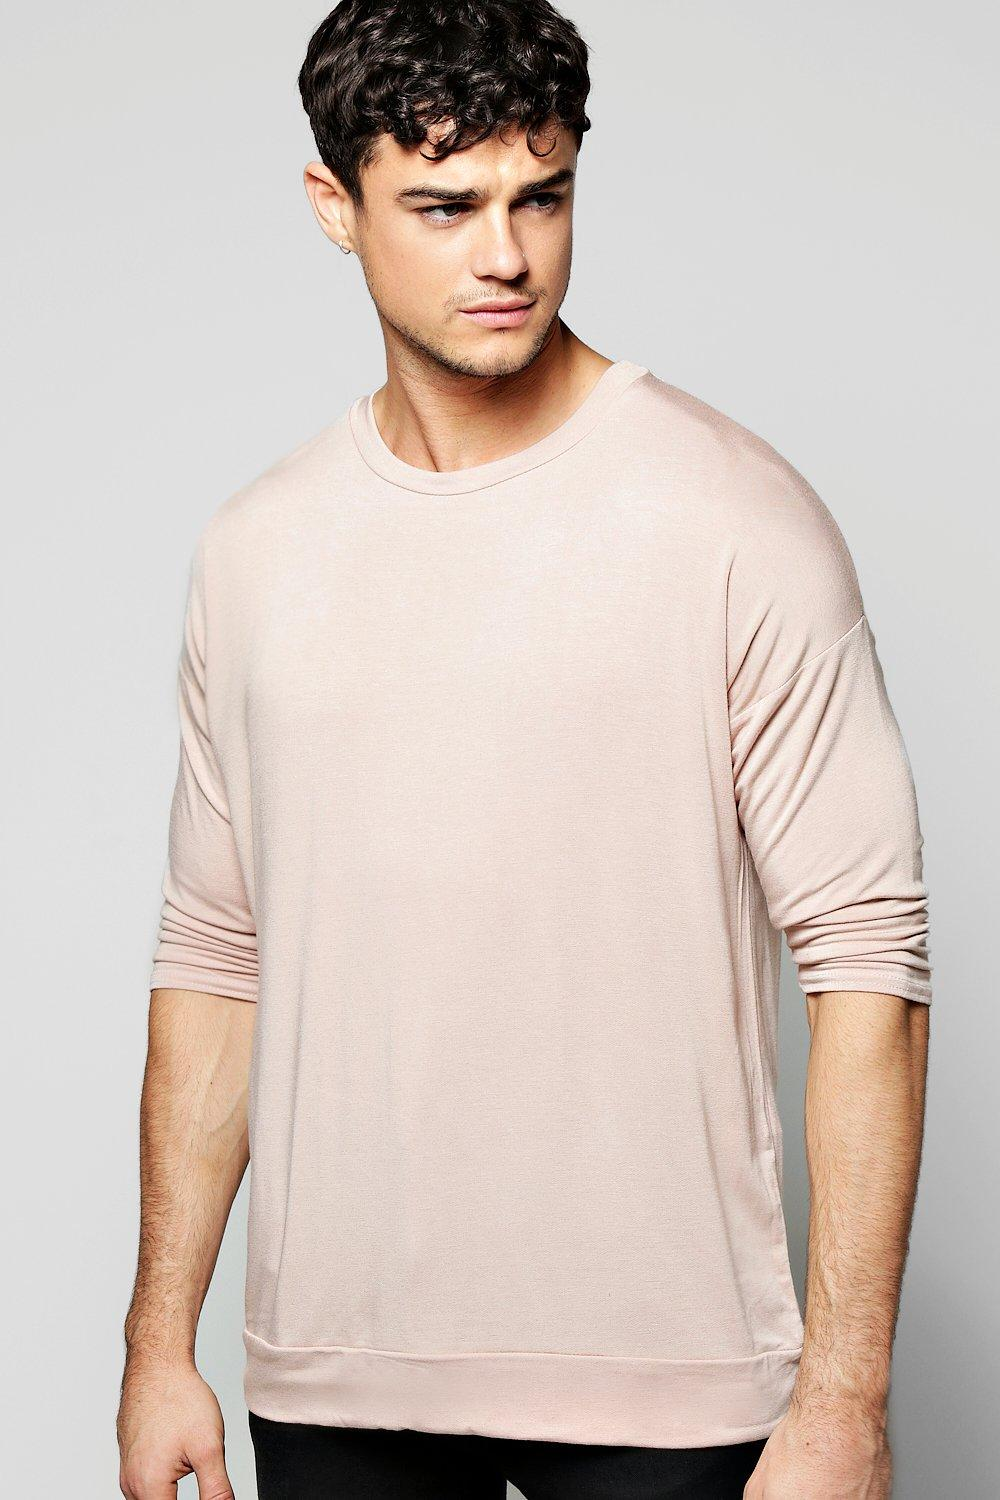 Oversized Raglan 3/4 Sleeve Sweatshirt